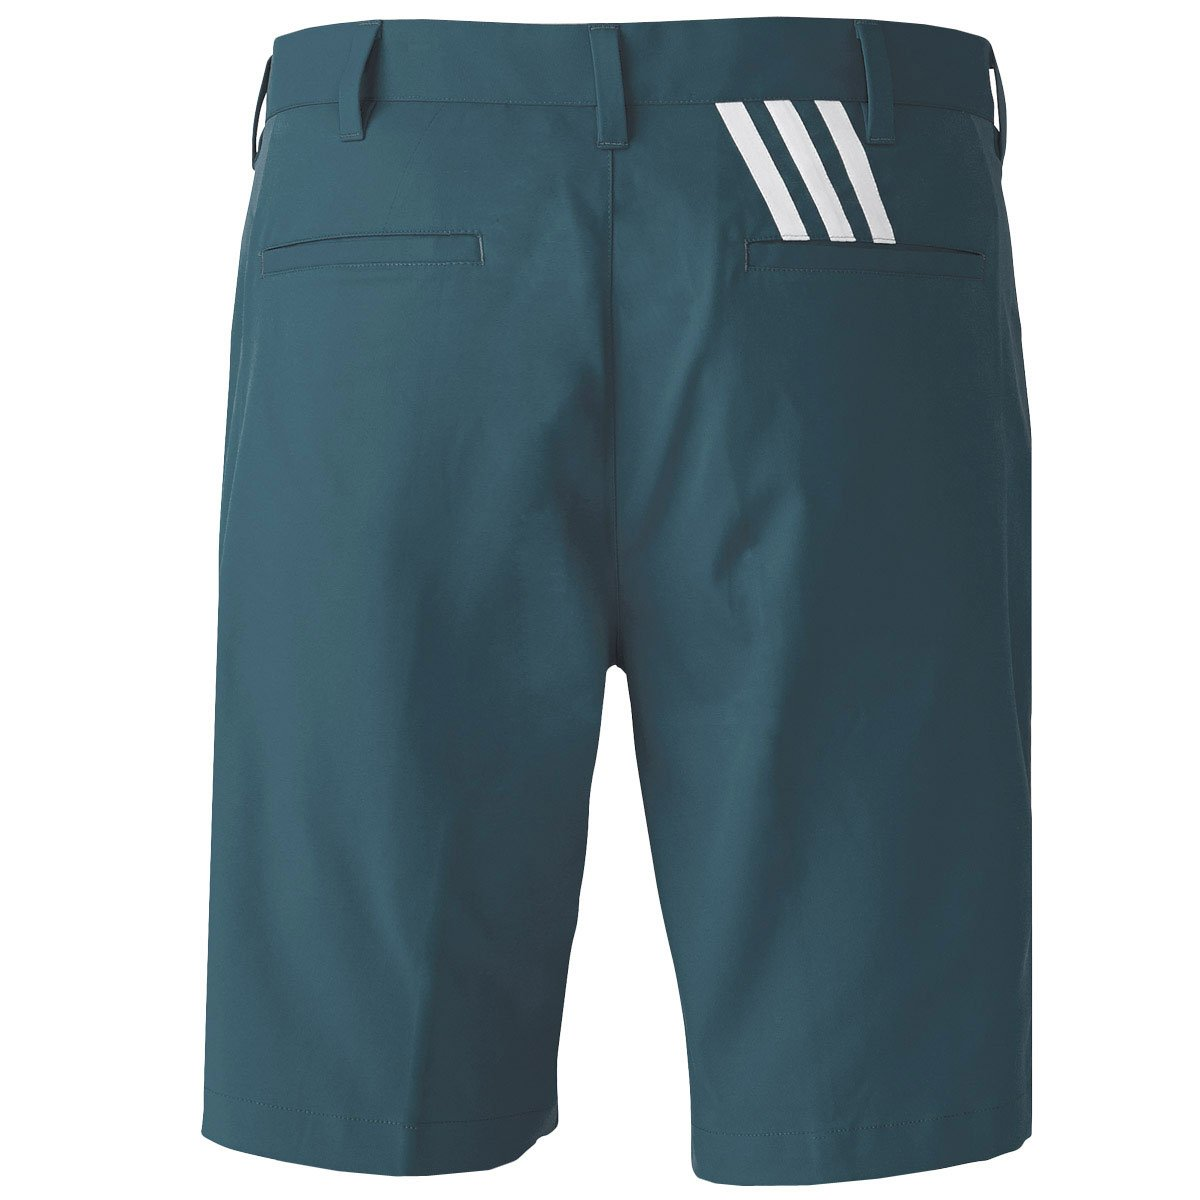 21602ace1 2016 Adidas Puremotion Stretch 3-Stripes Mens Golf Flat Front Shorts  Mineral Blue 30